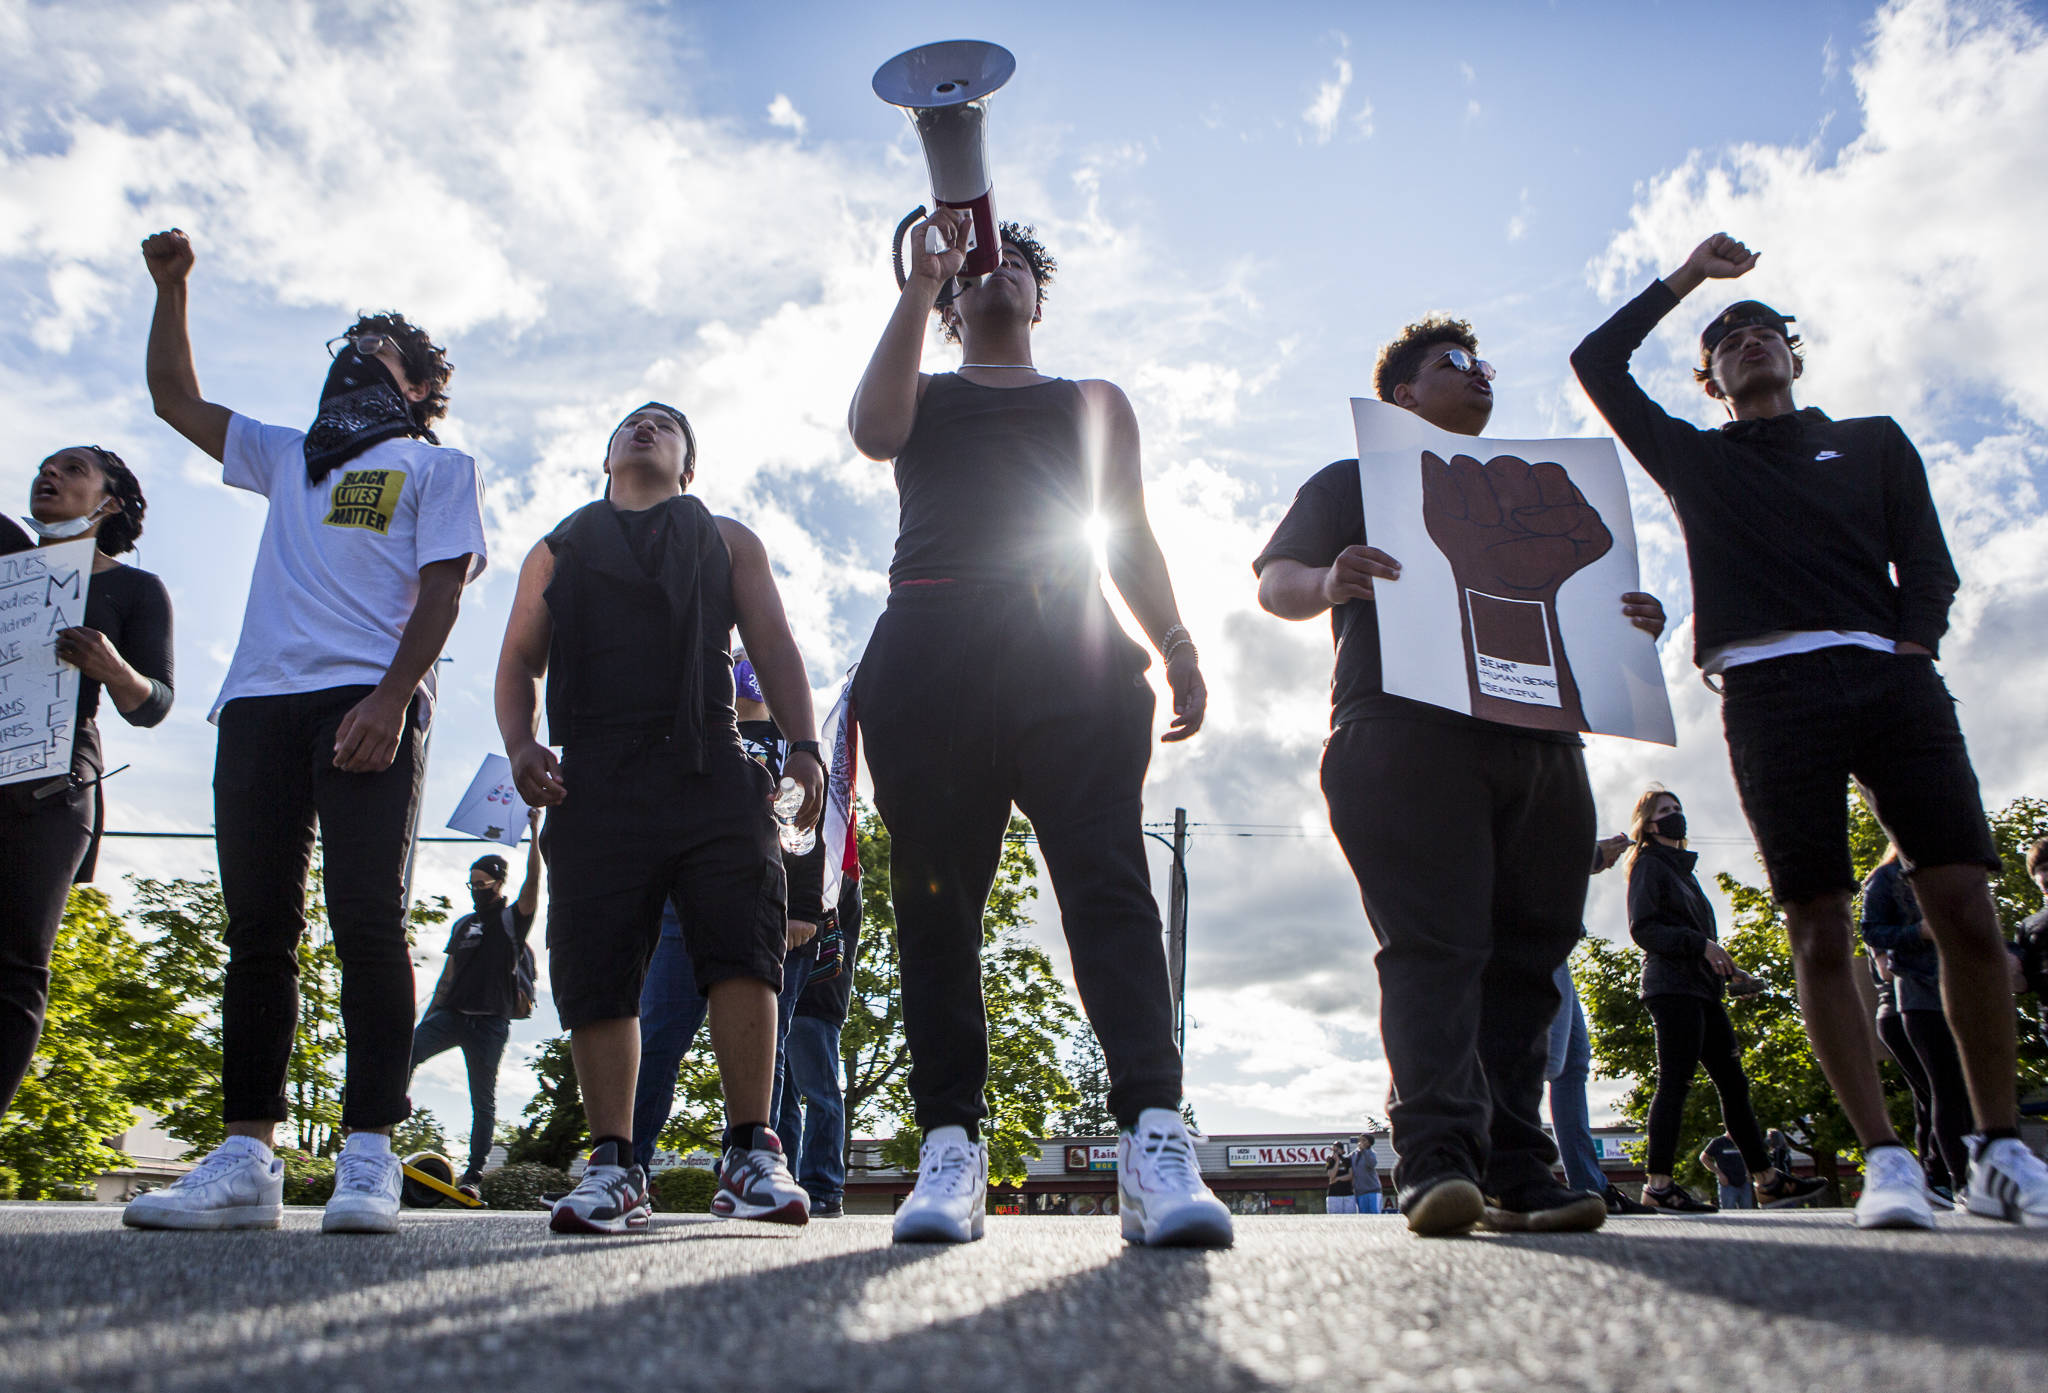 Bilal Jaddi (left to right), Christian Ayson, Keyshon Rife, Daniel Jenkins and Cameron Asinsin lead the crowd in chants as they arrive at the park lot along 84th Street and Mukilteo Speedway during the Black Lives Matter protest on Sunday in Mukilteo. (Olivia Vanni / The Herald)